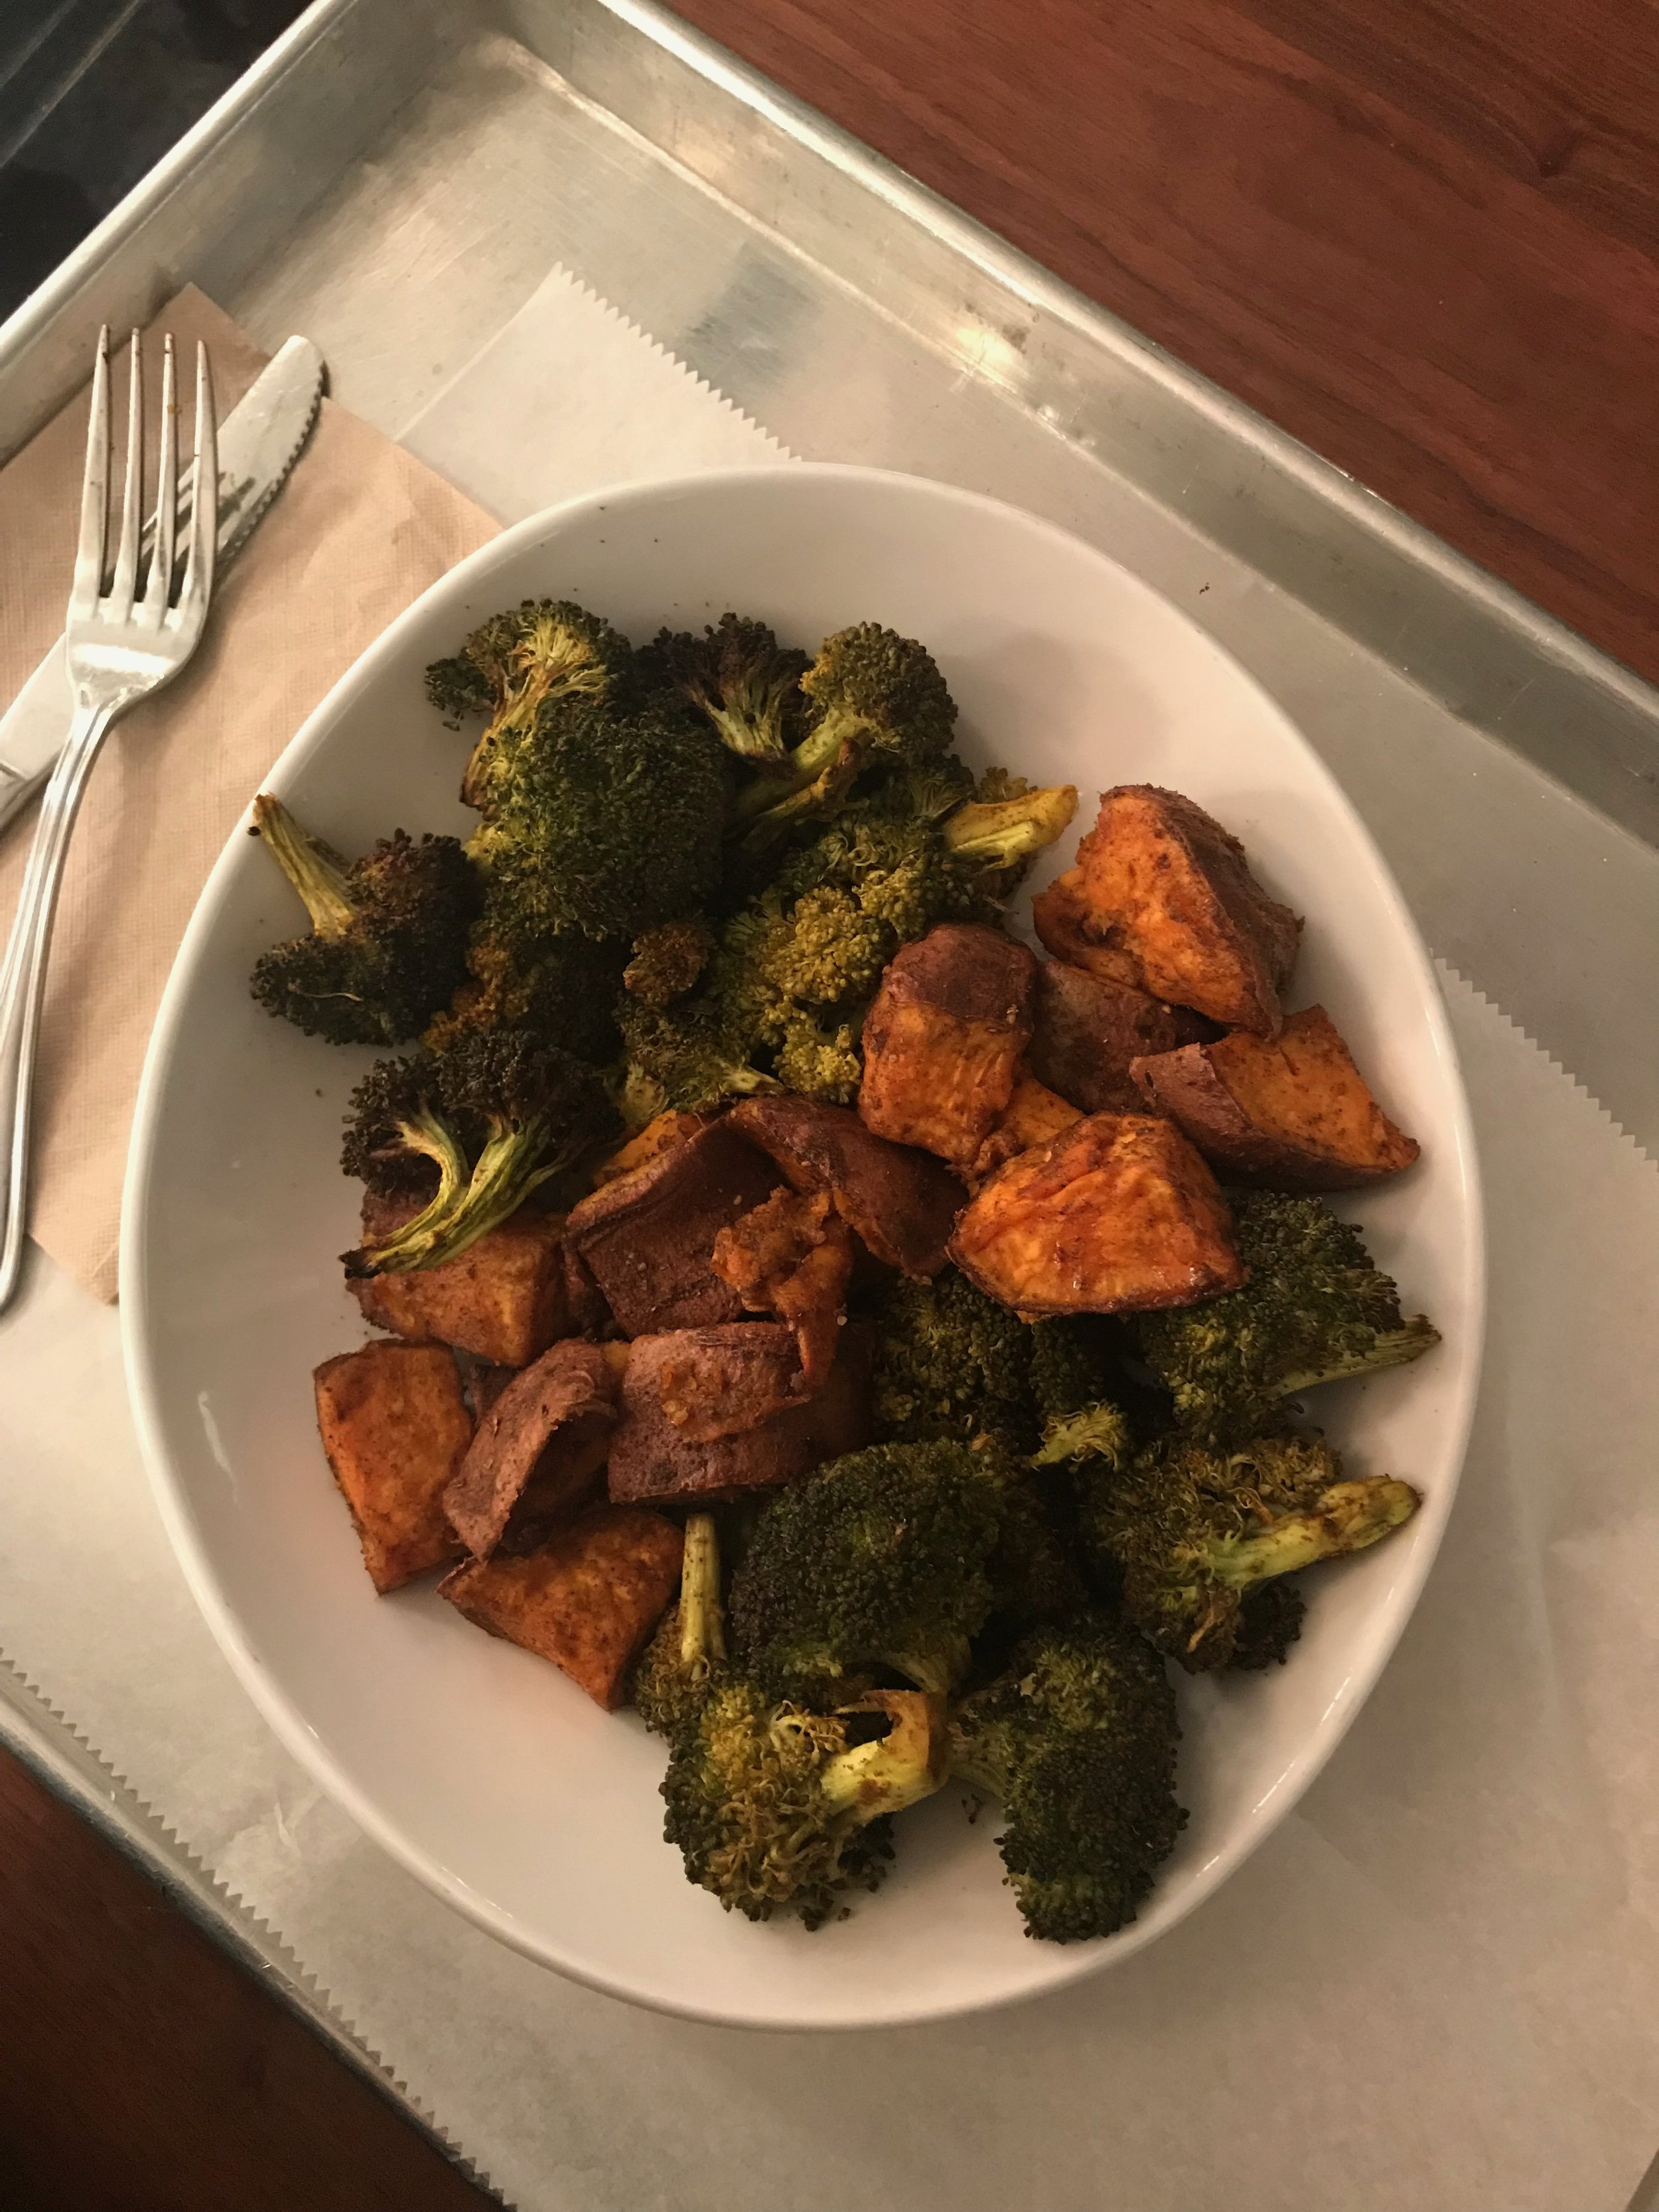 my favorite meal out: sides matter from Hu Kitchen